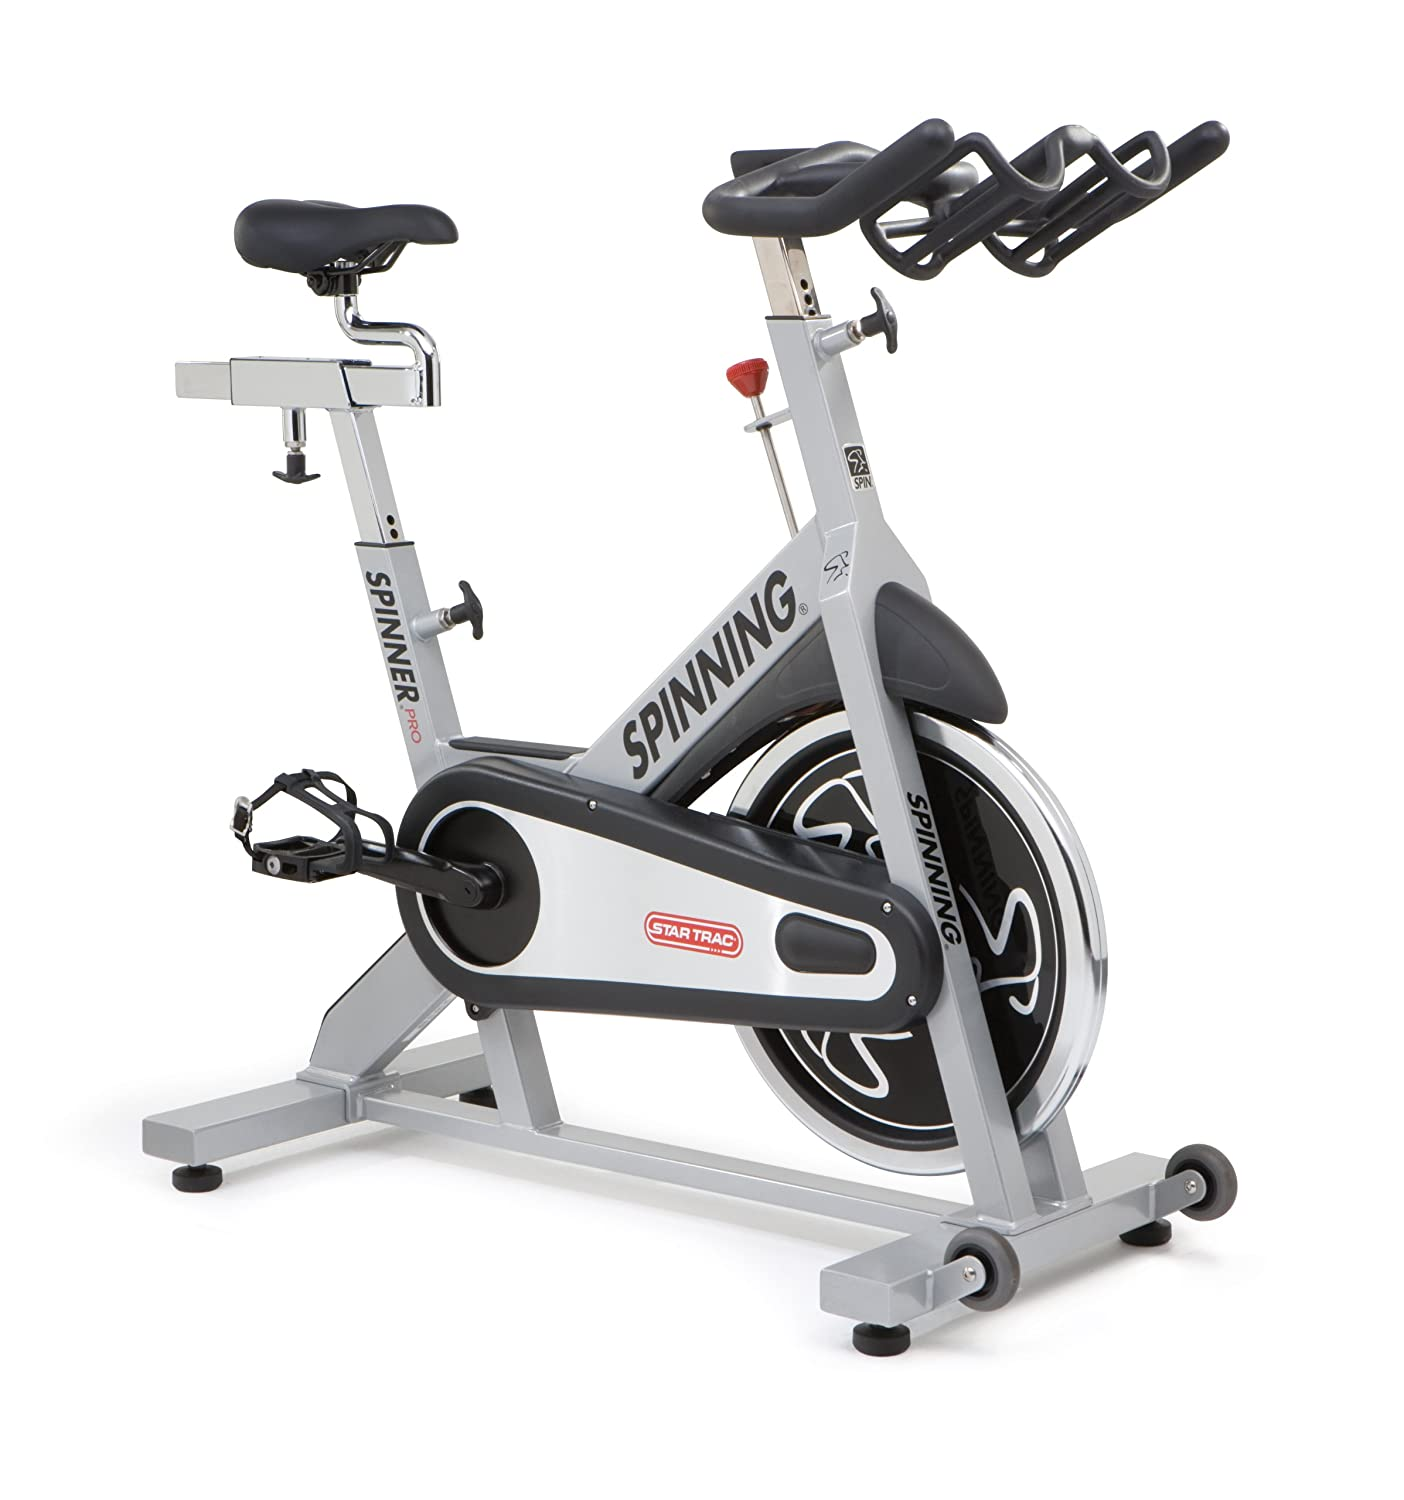 Spinner Pro Manufactured by Star Trac - Commercial Spin Bike